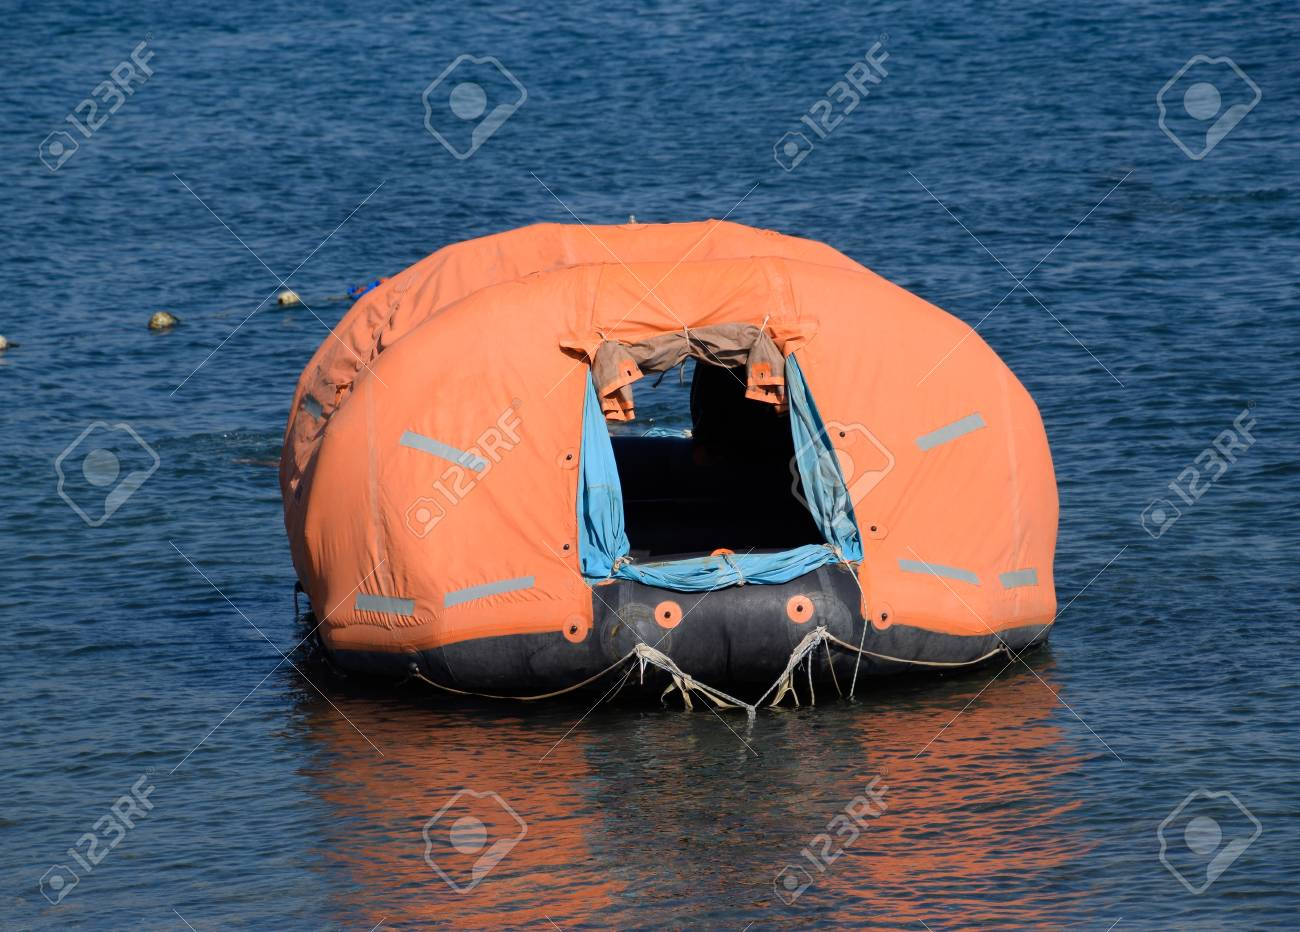 Inflatable boat with tent Canopy on boat. Stock Photo - 106340240 & Inflatable Boat With Tent Canopy On Boat. Stock Photo Picture And ...